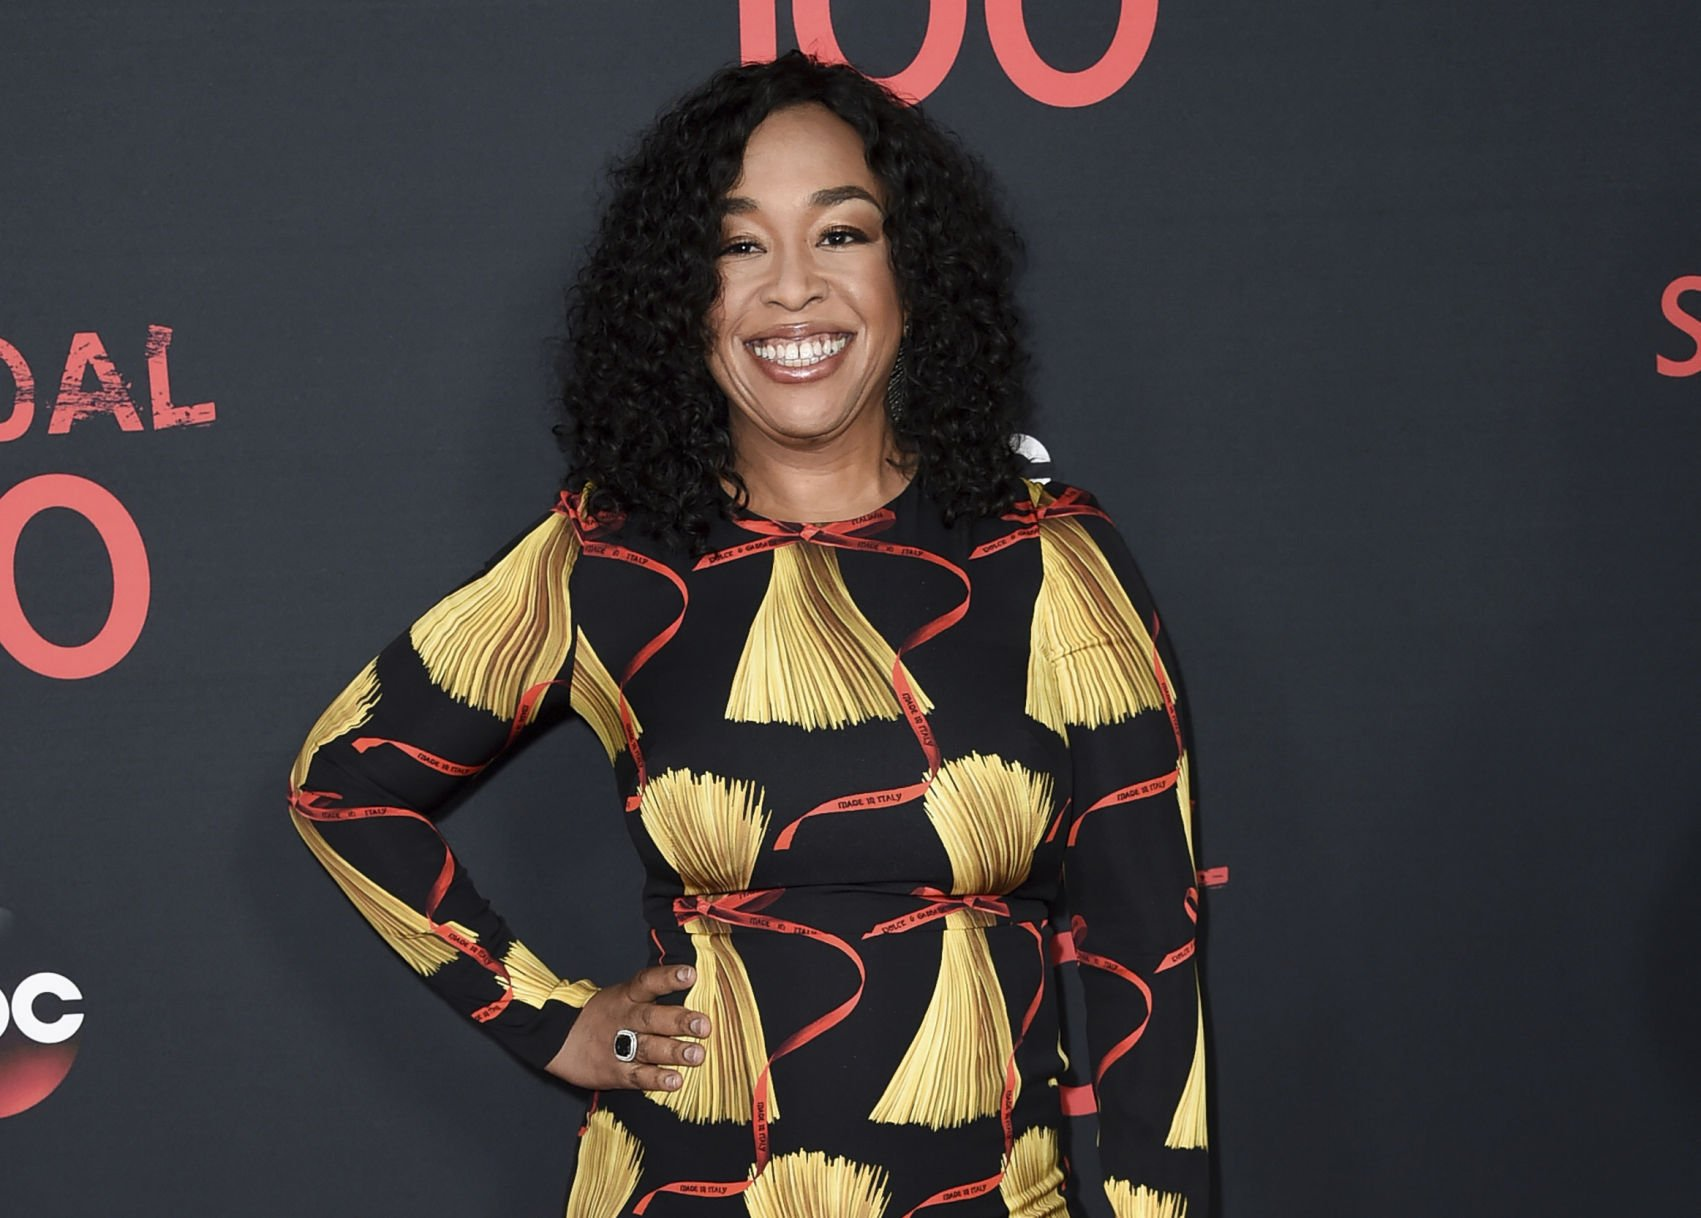 Grey's Anatomy's Shonda Rhimes leaves ABC for Netflix